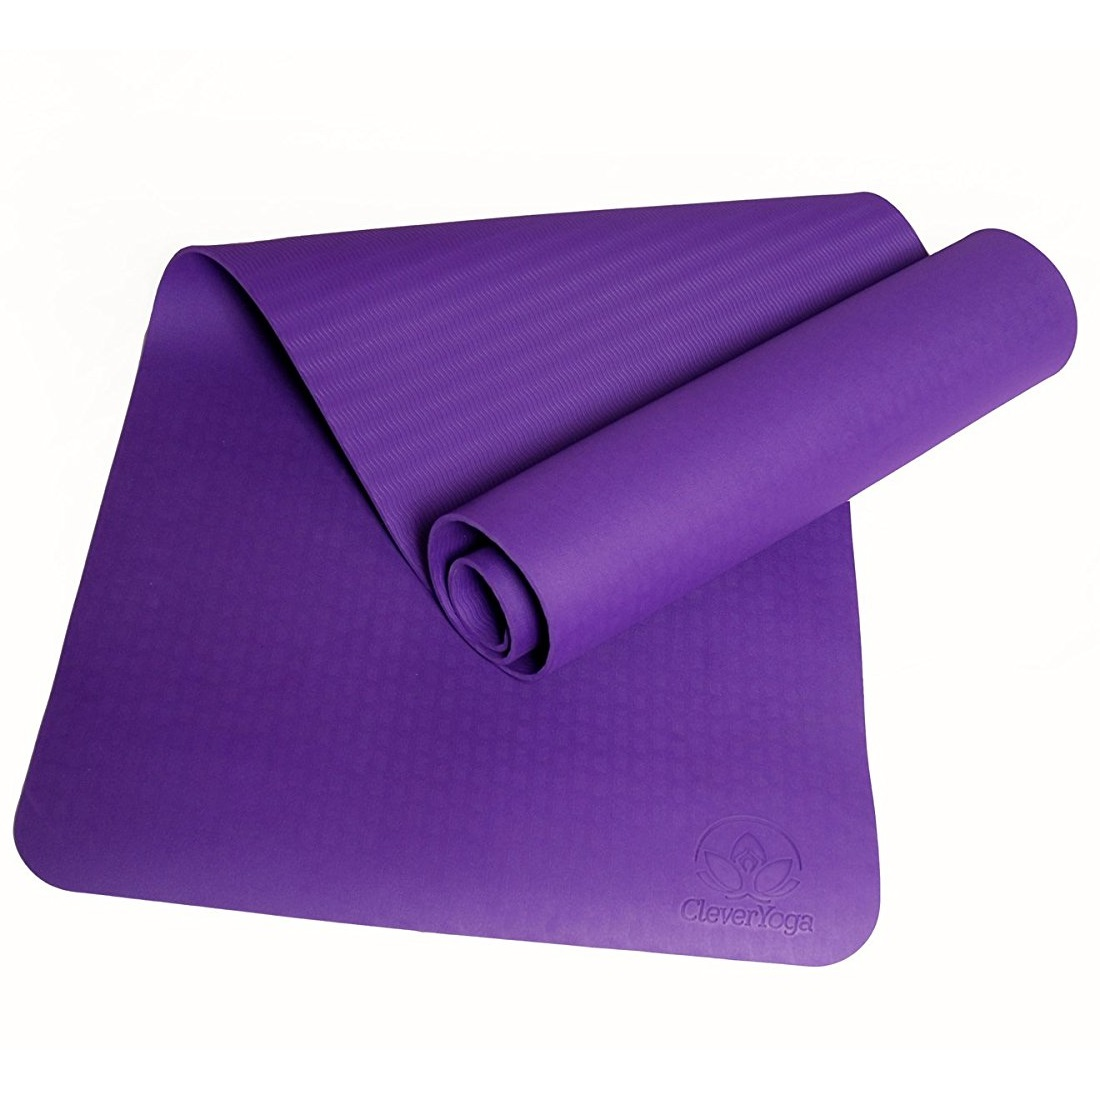 yoga mat pm mats htm purple end fitme p fitmemy premium sale jute